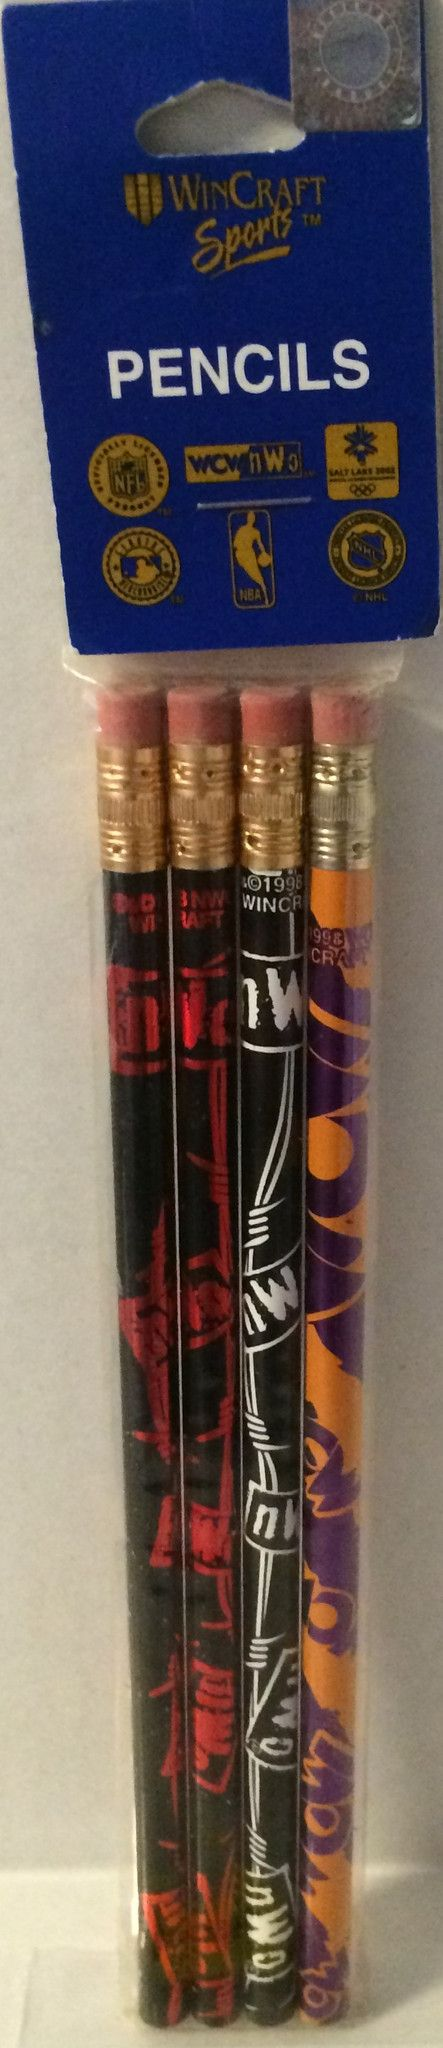 (TAS032096) - Wincraft Sports WCW nWo Wrestling Wooden Pencil 4 Pack